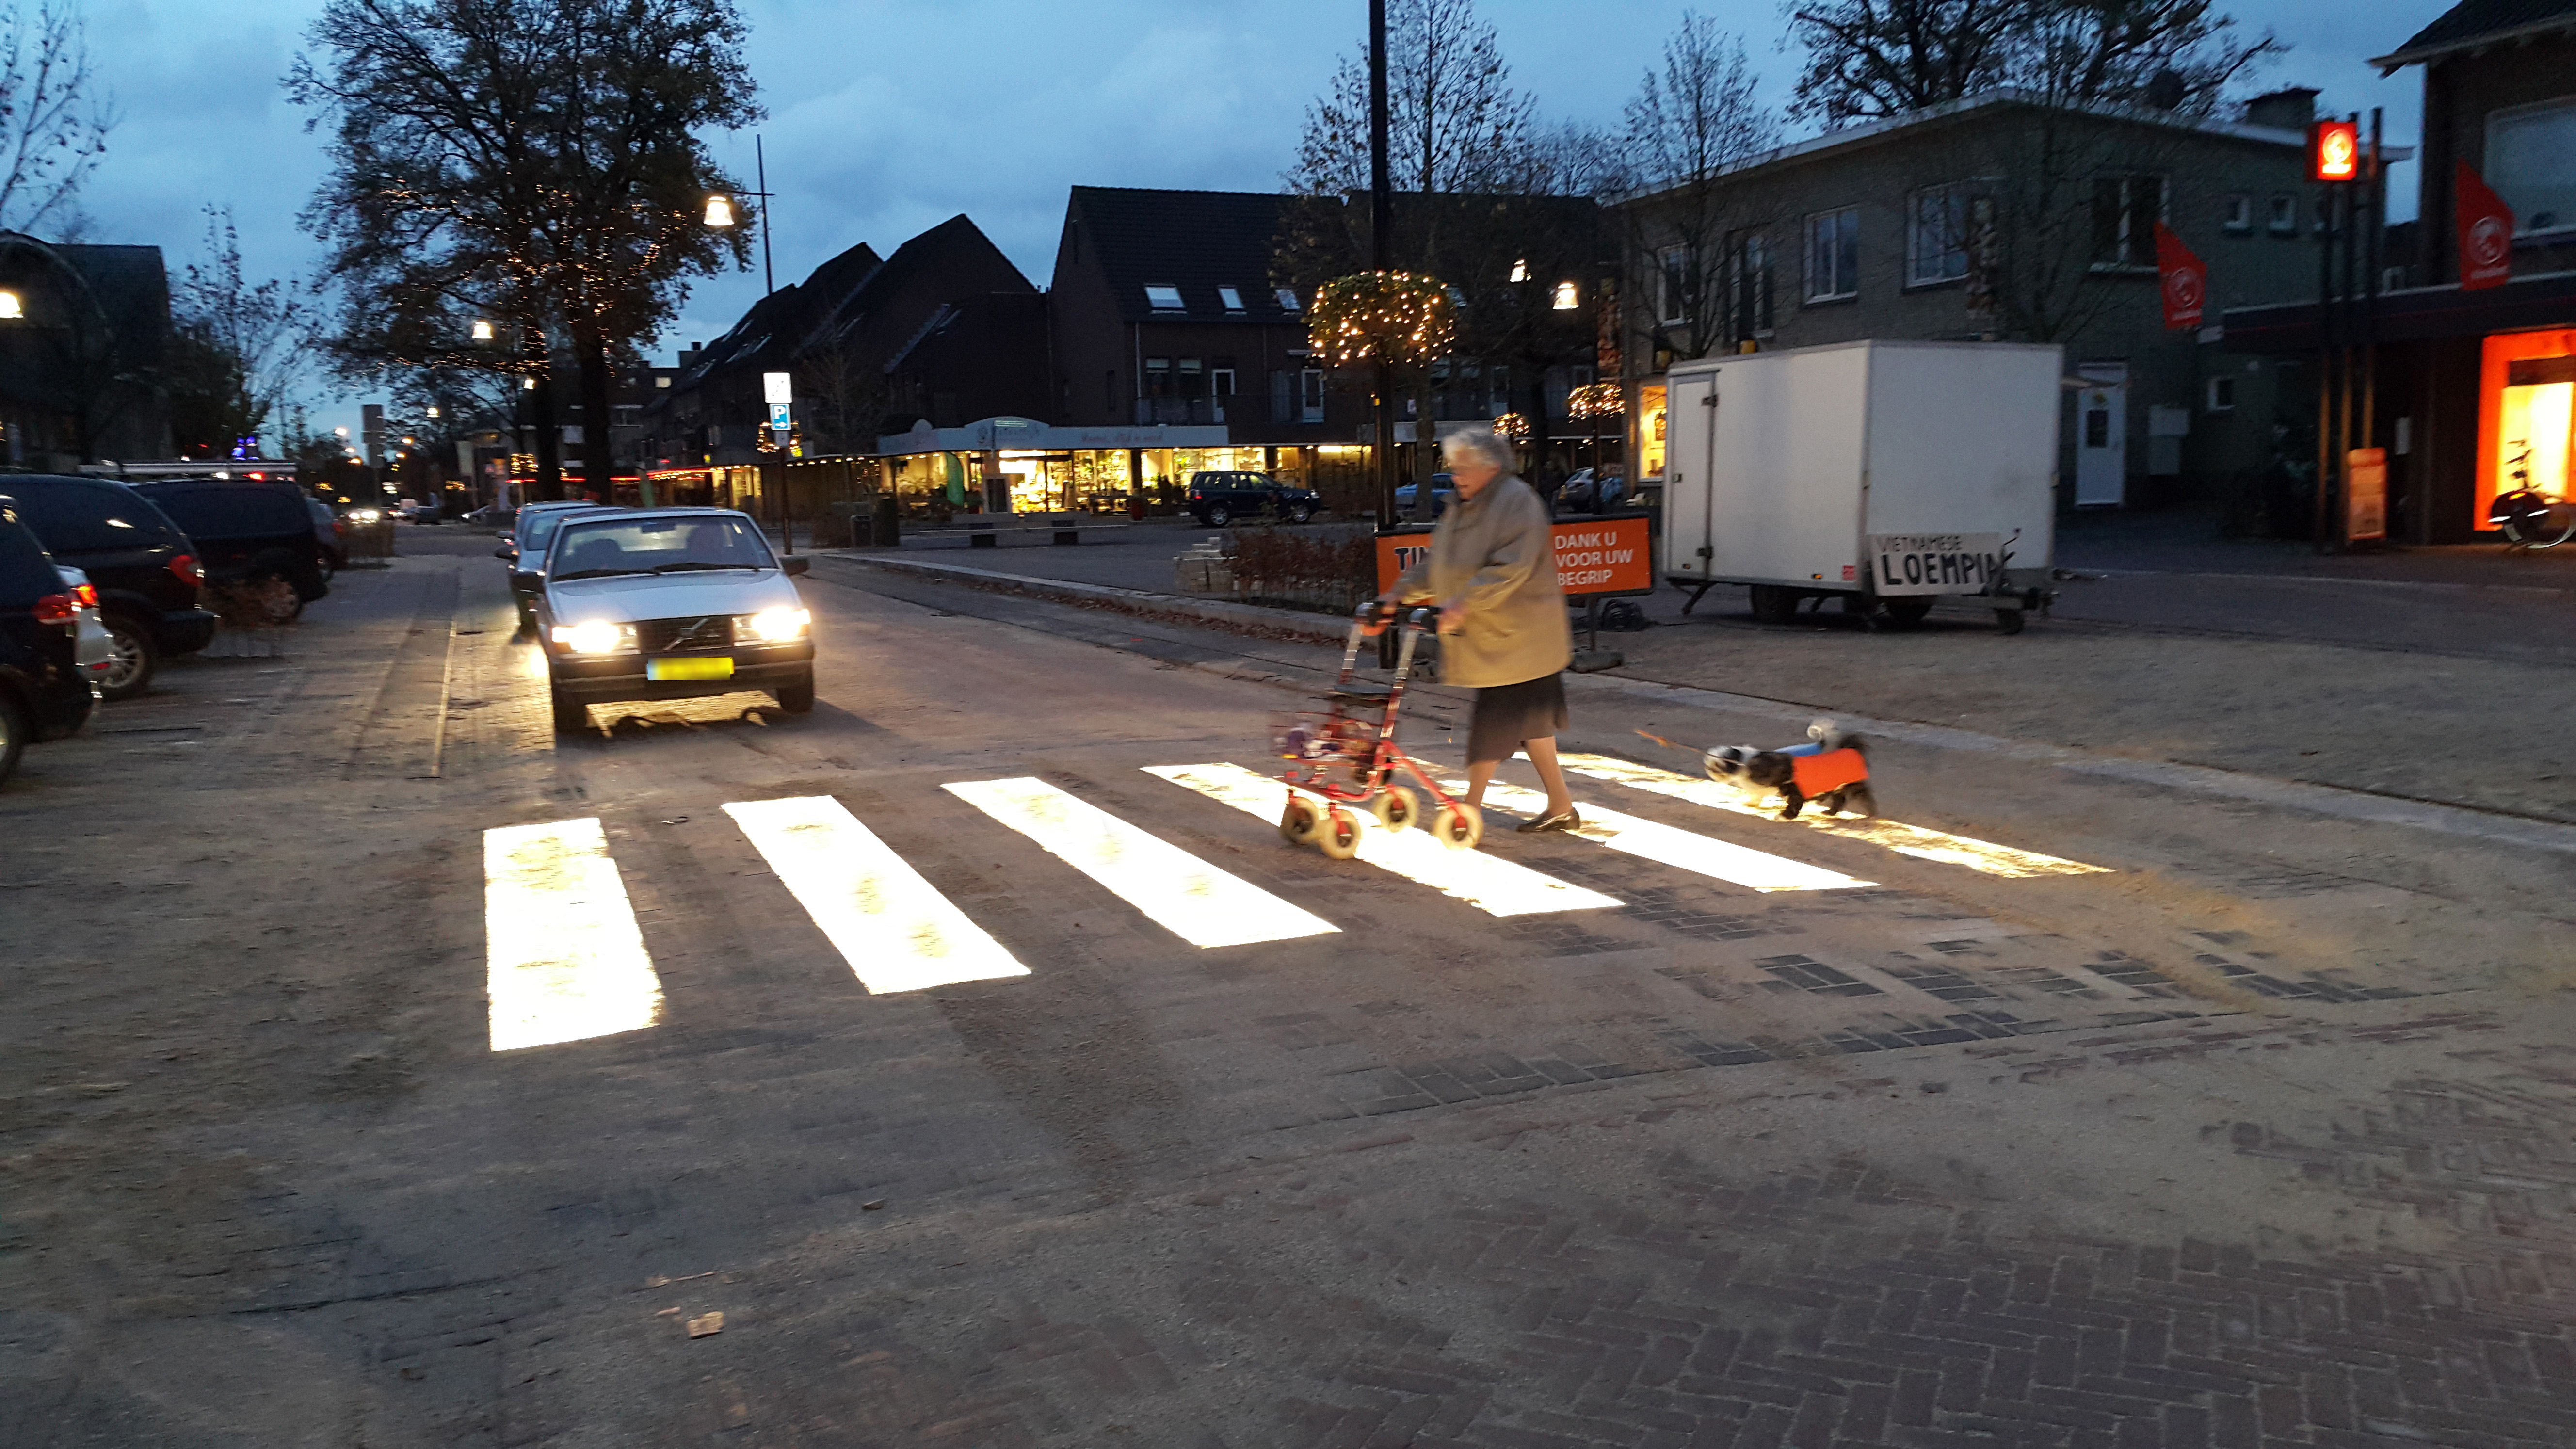 World's first lighted zebra crossing in the Netherlands • Materia